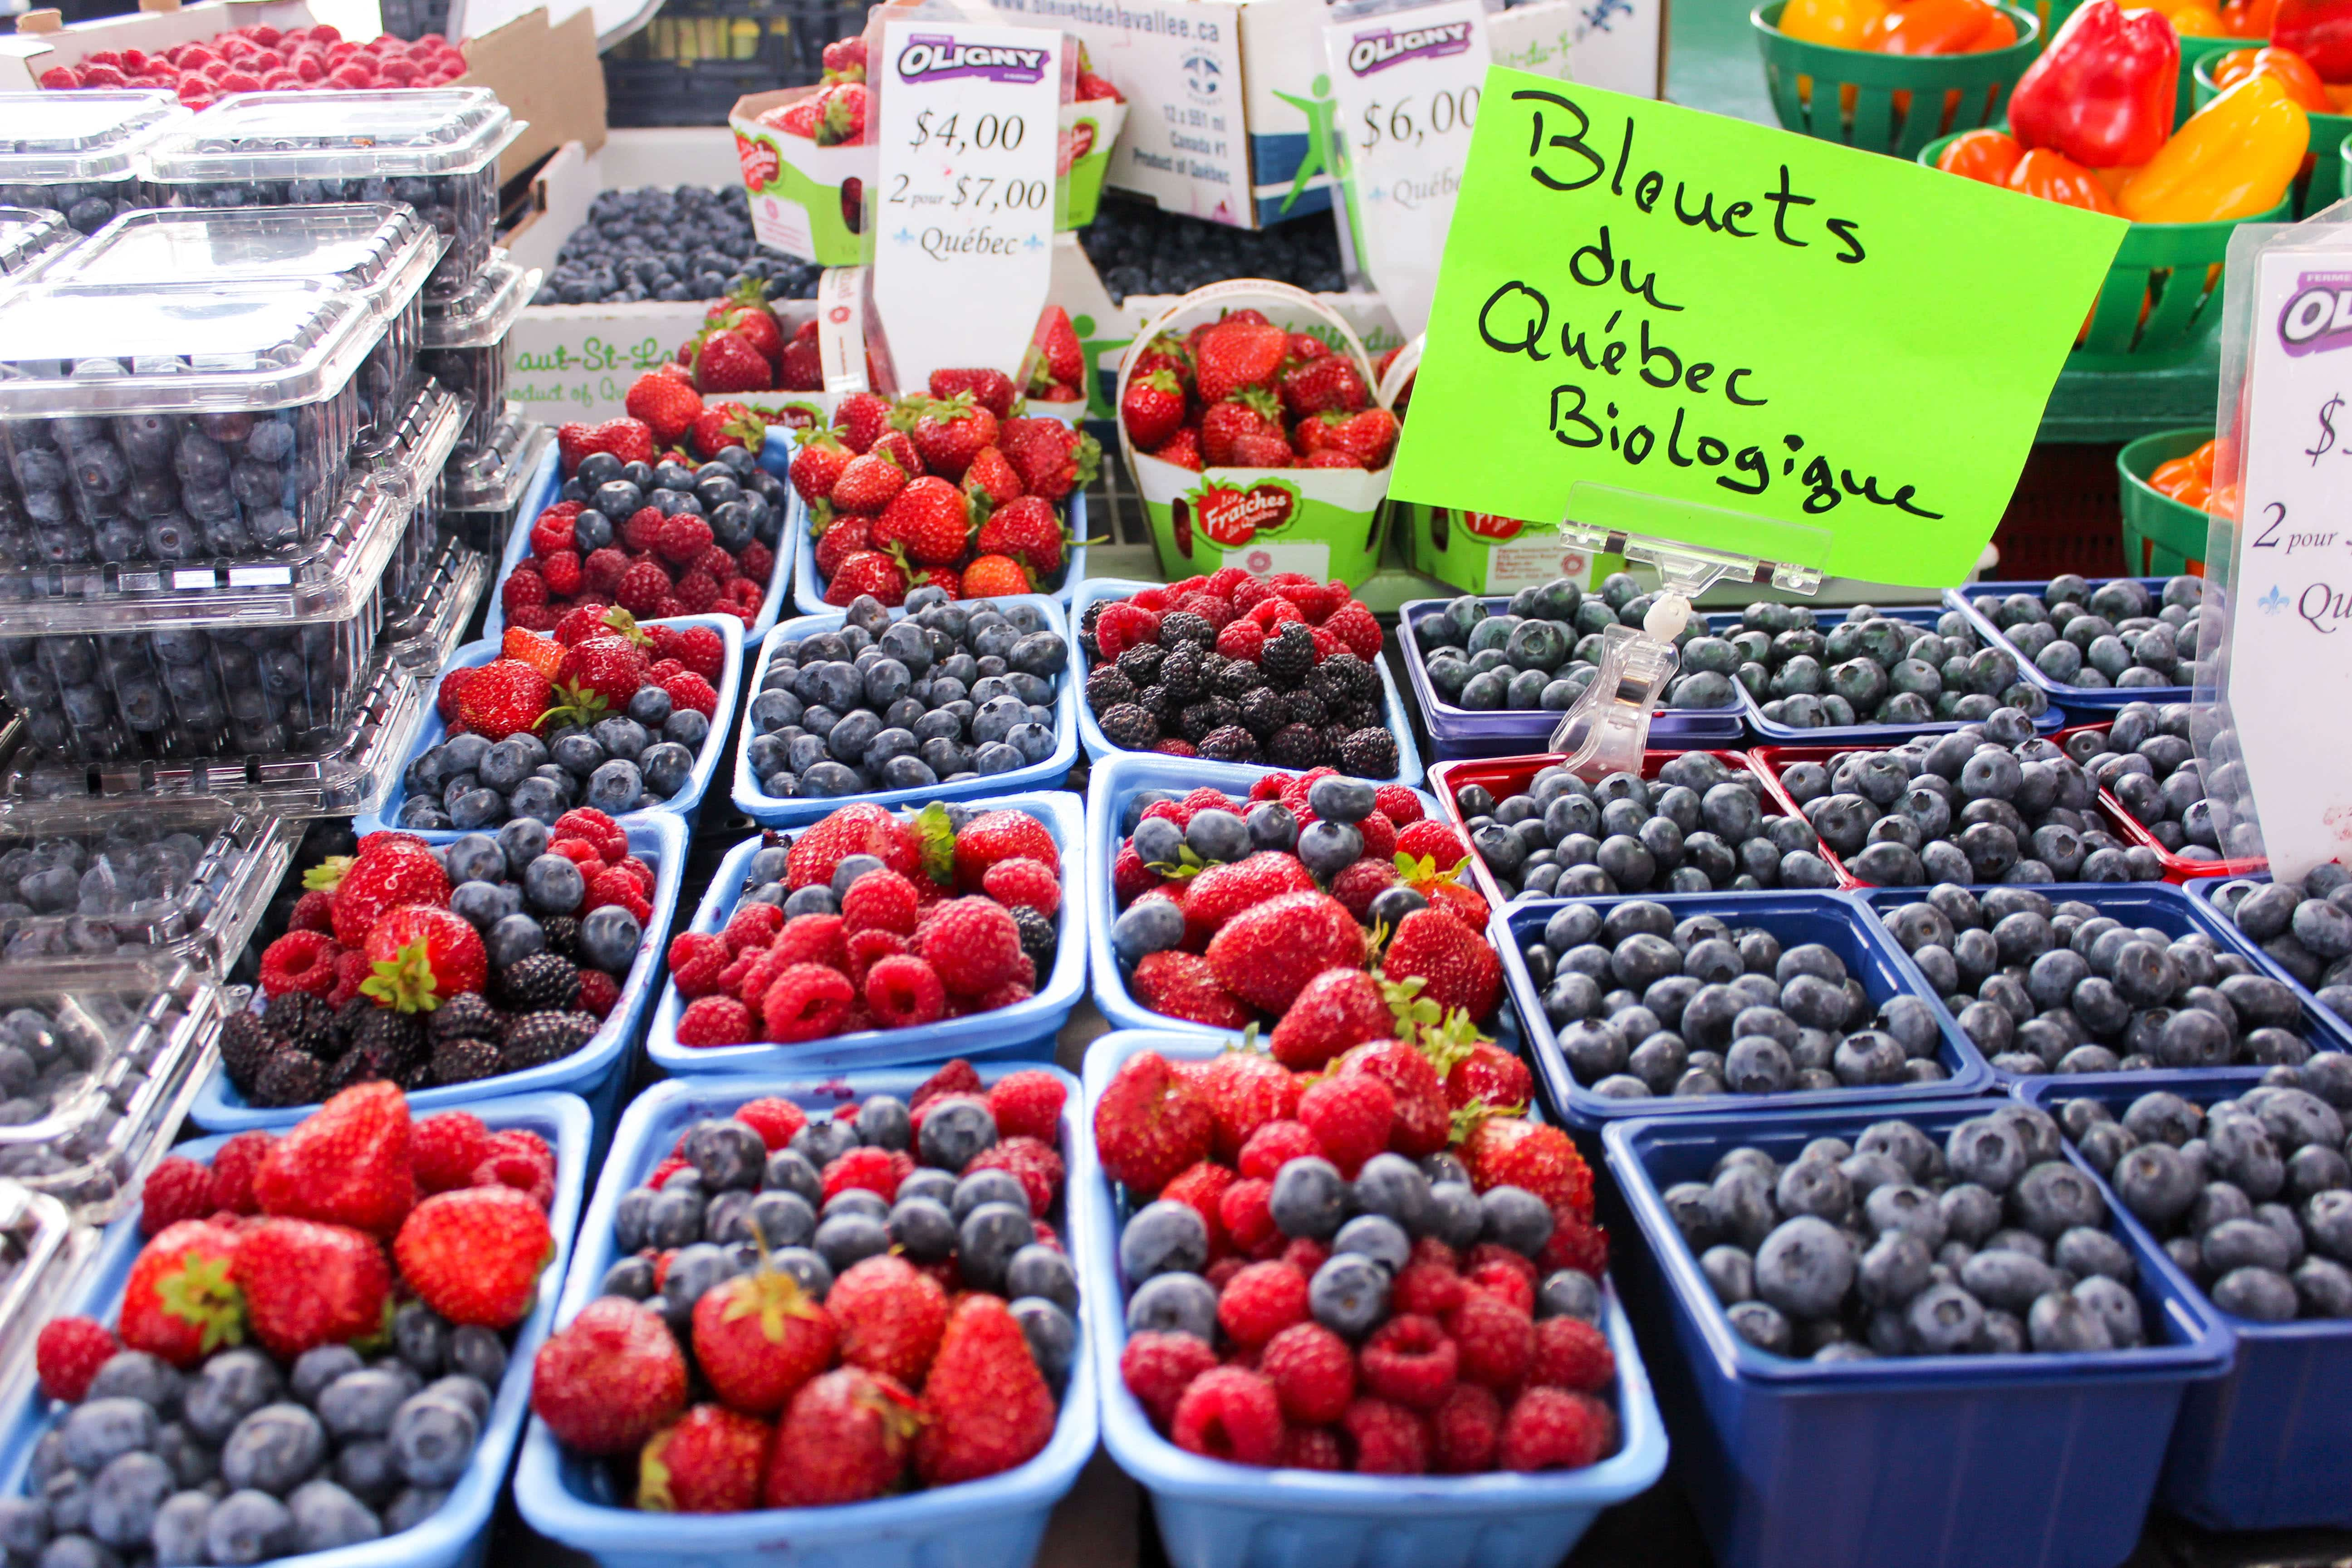 Blueberries, Raspberries and Strawberries in blue boxes.